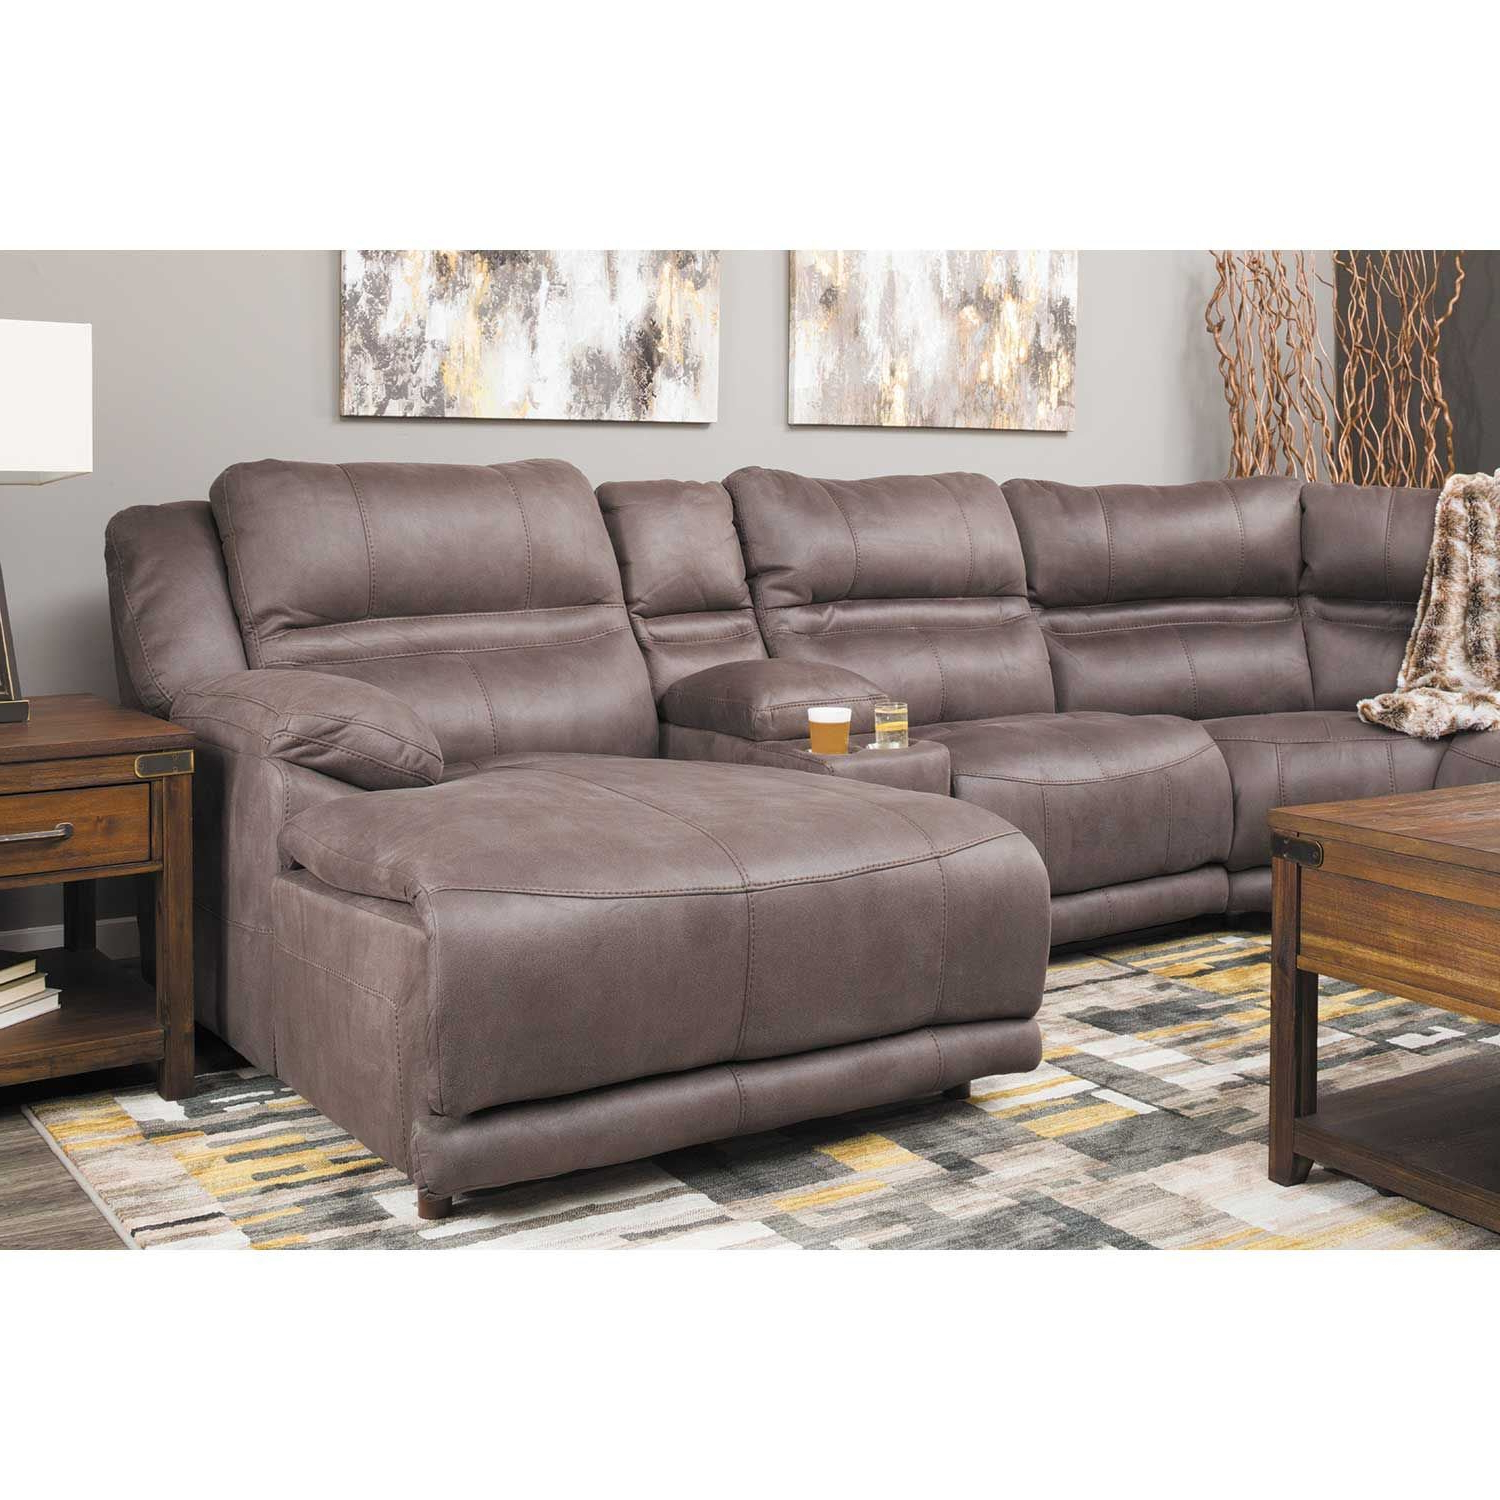 Jackson 6 Piece Power Reclining Sectionals With Sleeper Regarding Trendy Braxton 6 Piece Power Reclining Sectional With Adjustable Headrest (View 5 of 20)